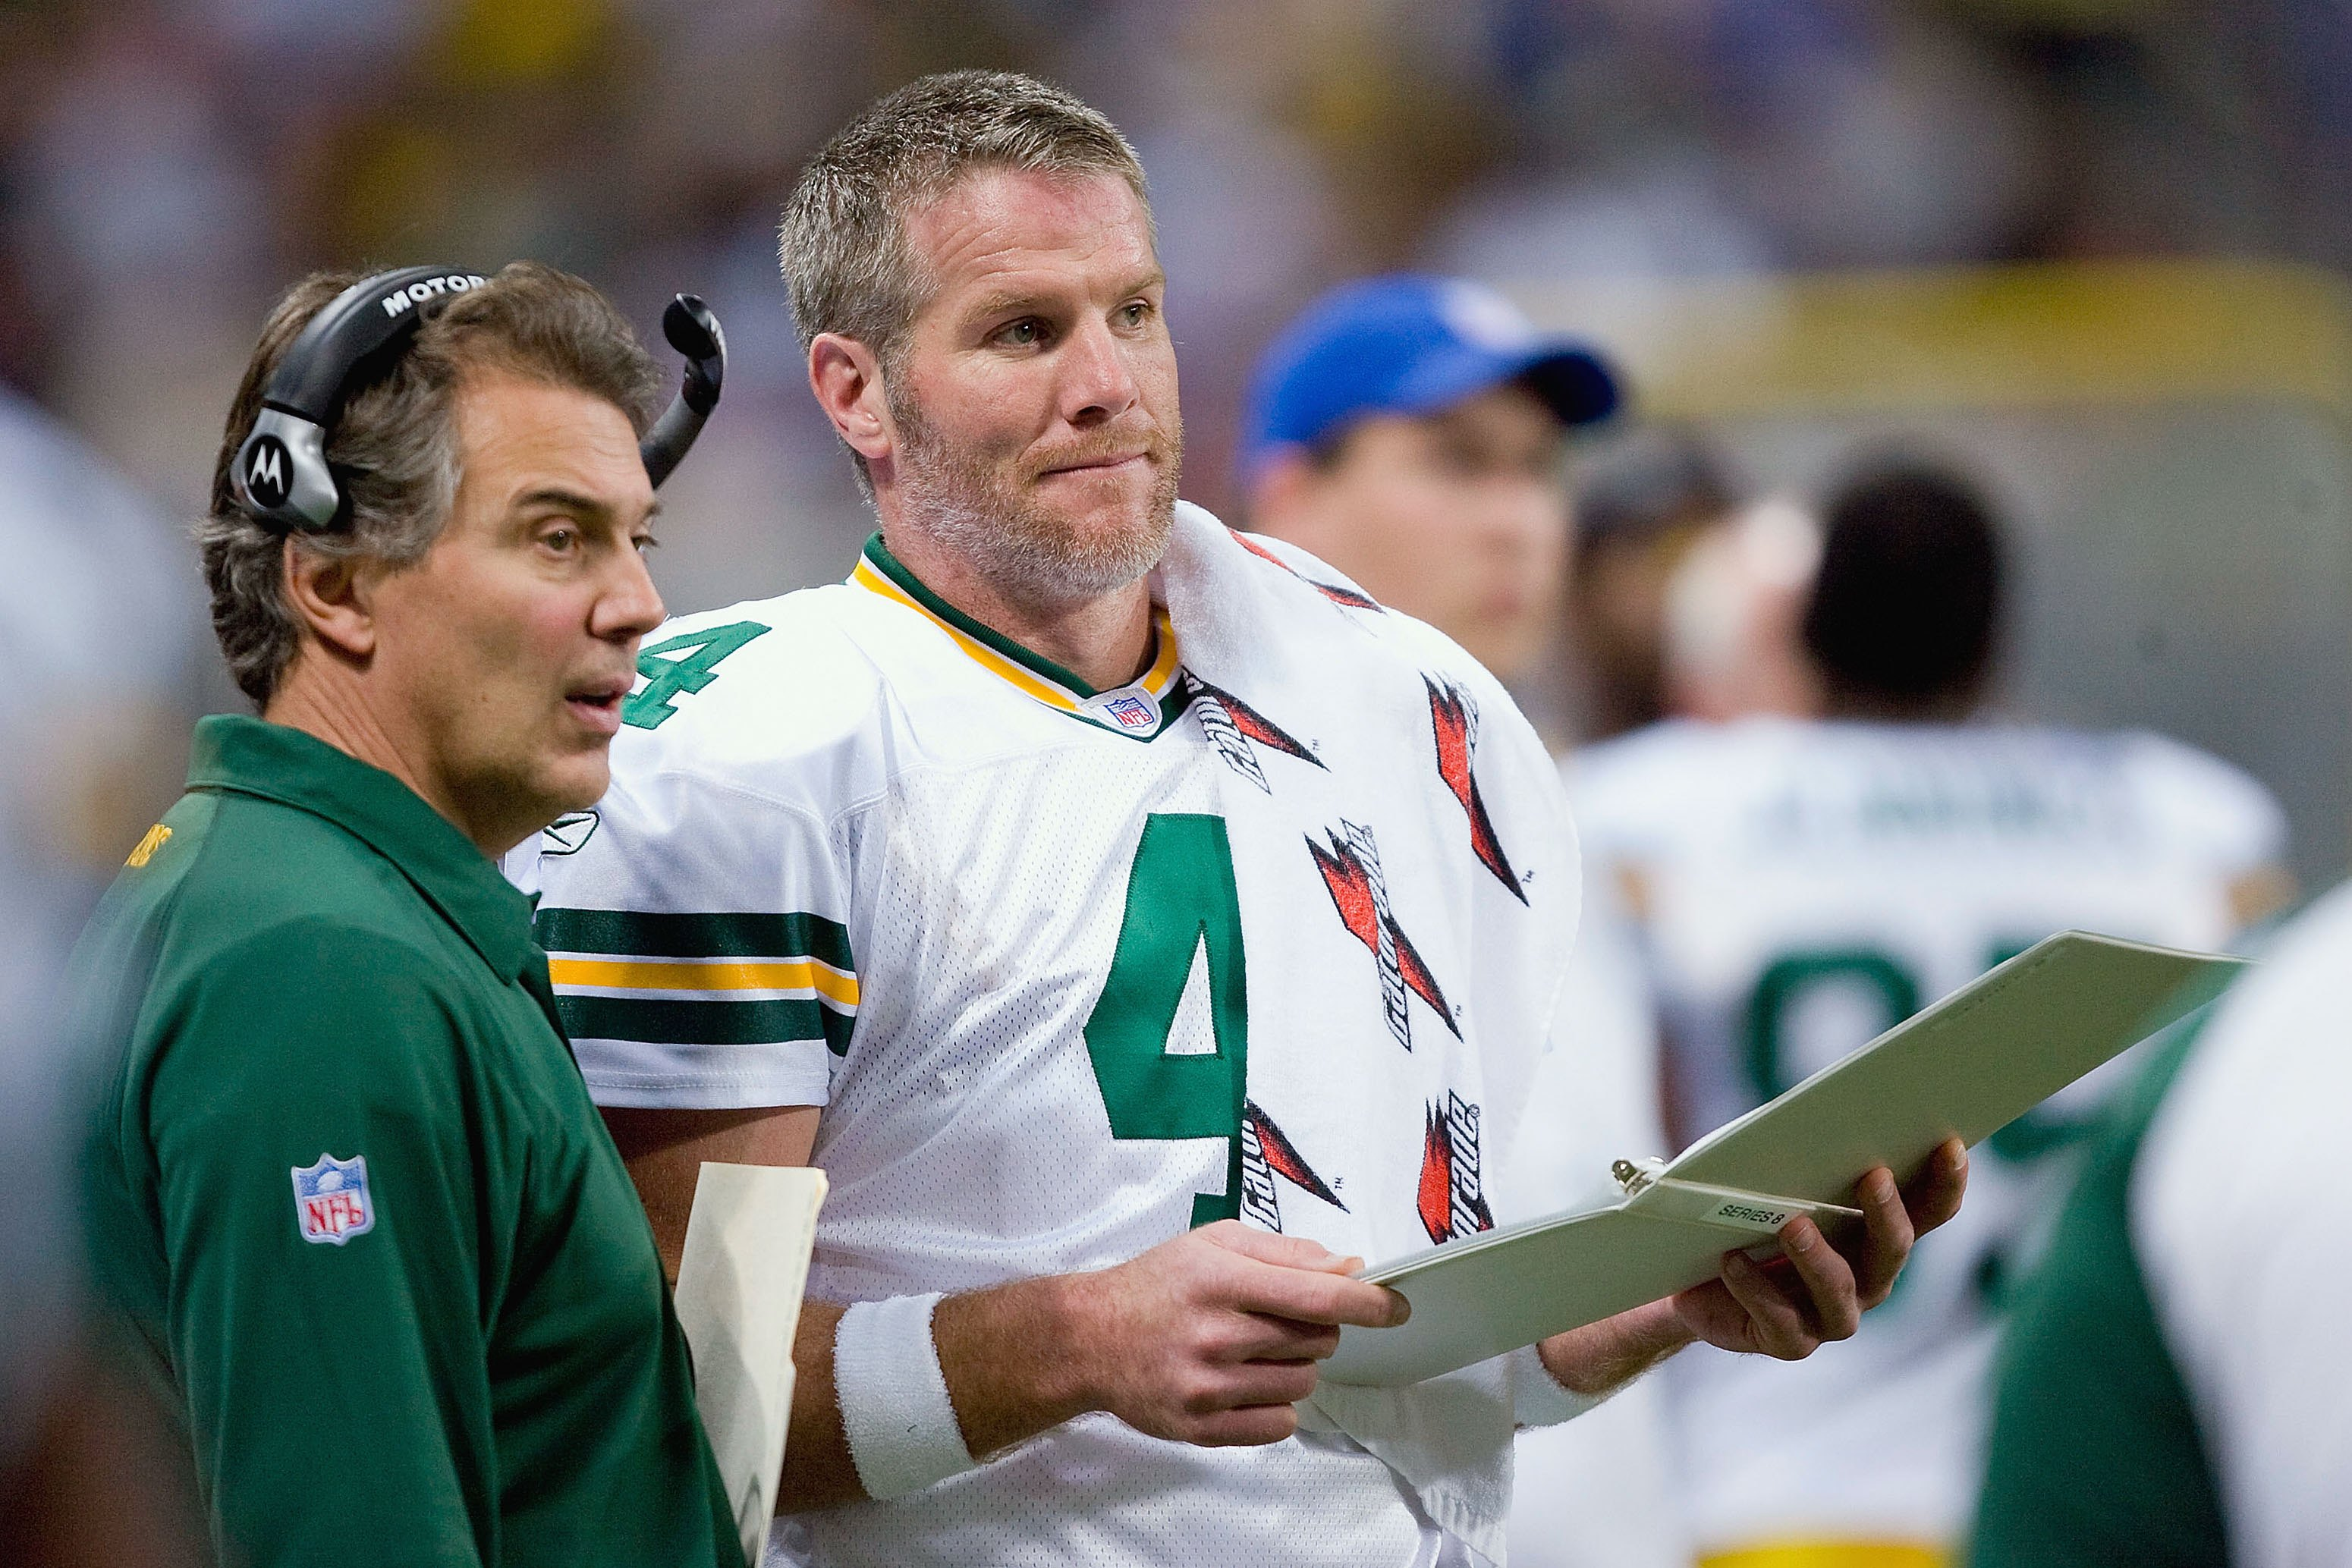 ST. LOUIS, MO - DECEMBER 16: Brett Favre #4 and Quarterback Coach Tom Clements of the Green Bay Packers look throught the playbook during the game against the St. Louis Rams on December 16, 2007 at the Edward Jones Dome in St. Louis, Missouri.  The Packer